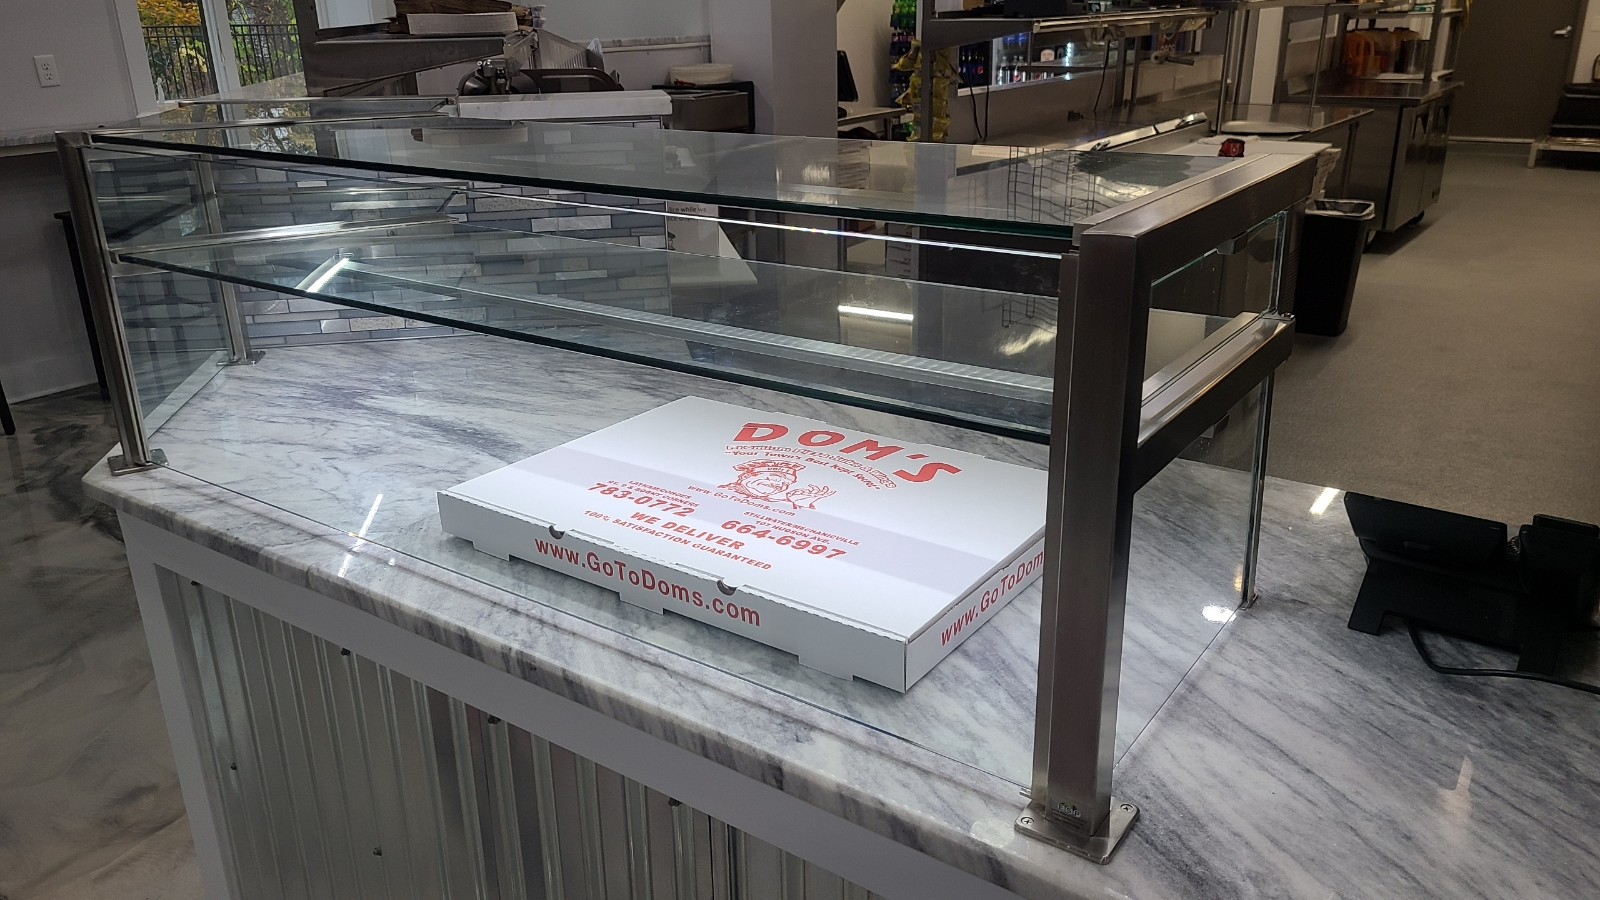 Satin Stainless Steel Food Shield | Dom's Pizza Subs & Wings - Stillwater, NY